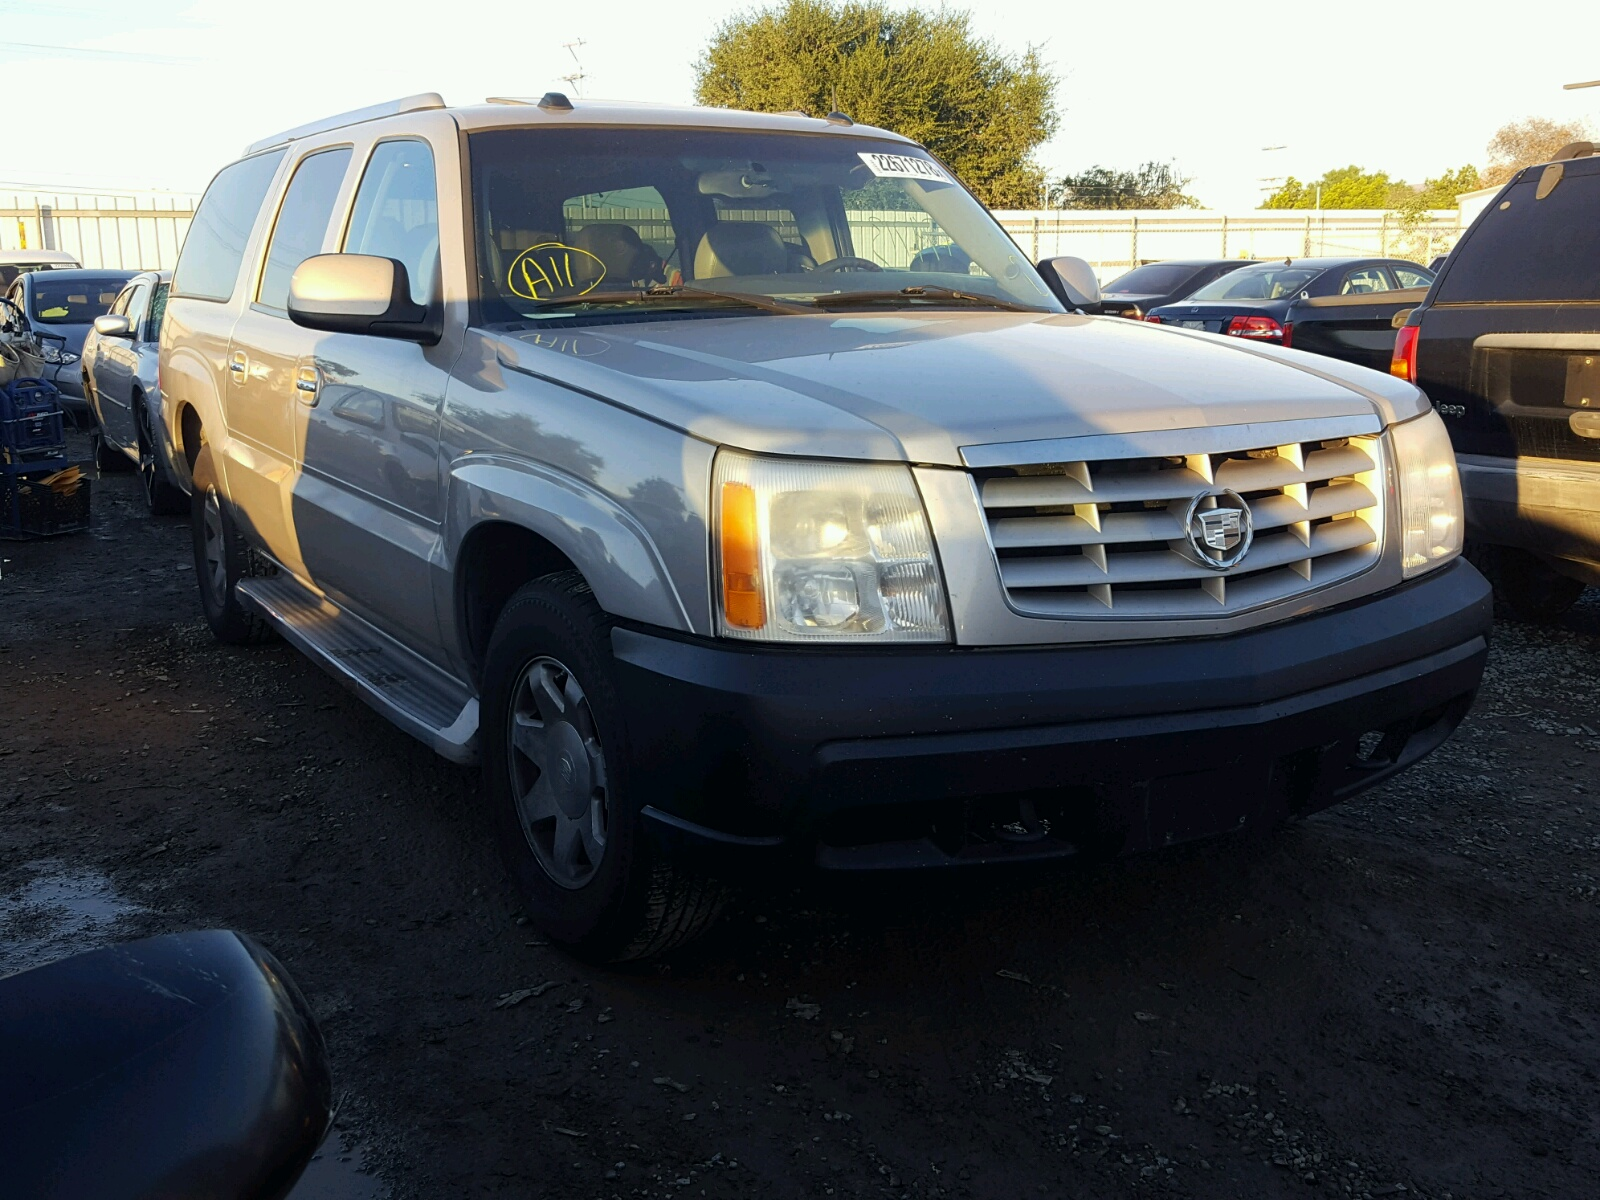 view north auto sale on escalade l carfinder chicago salvage copart certificate left white en for lot il cadillac auctions online in